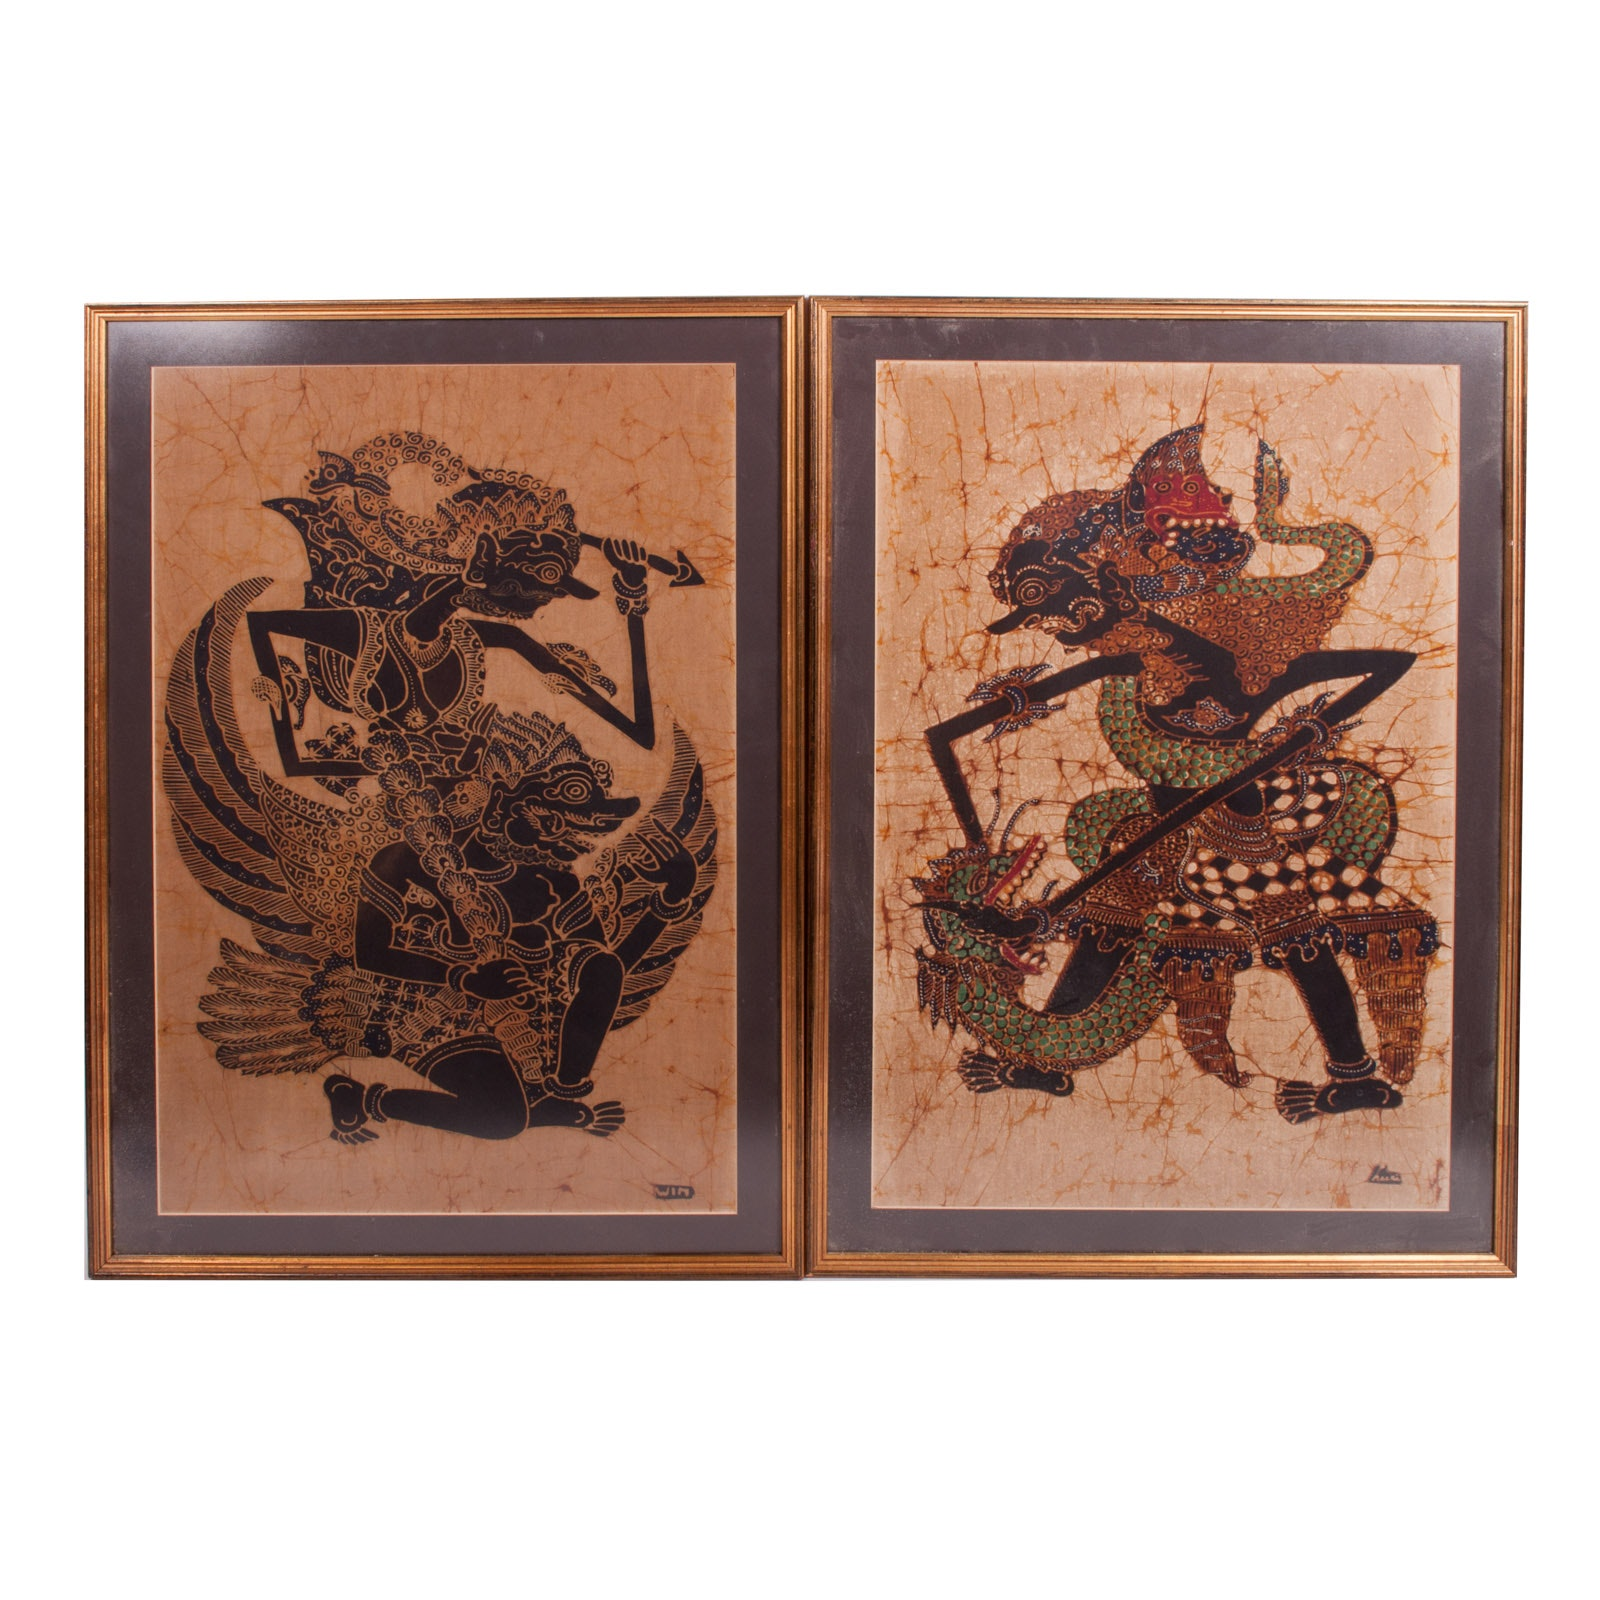 Pair of Indonesian Batik Paintings on Cotton After the Balinese Style